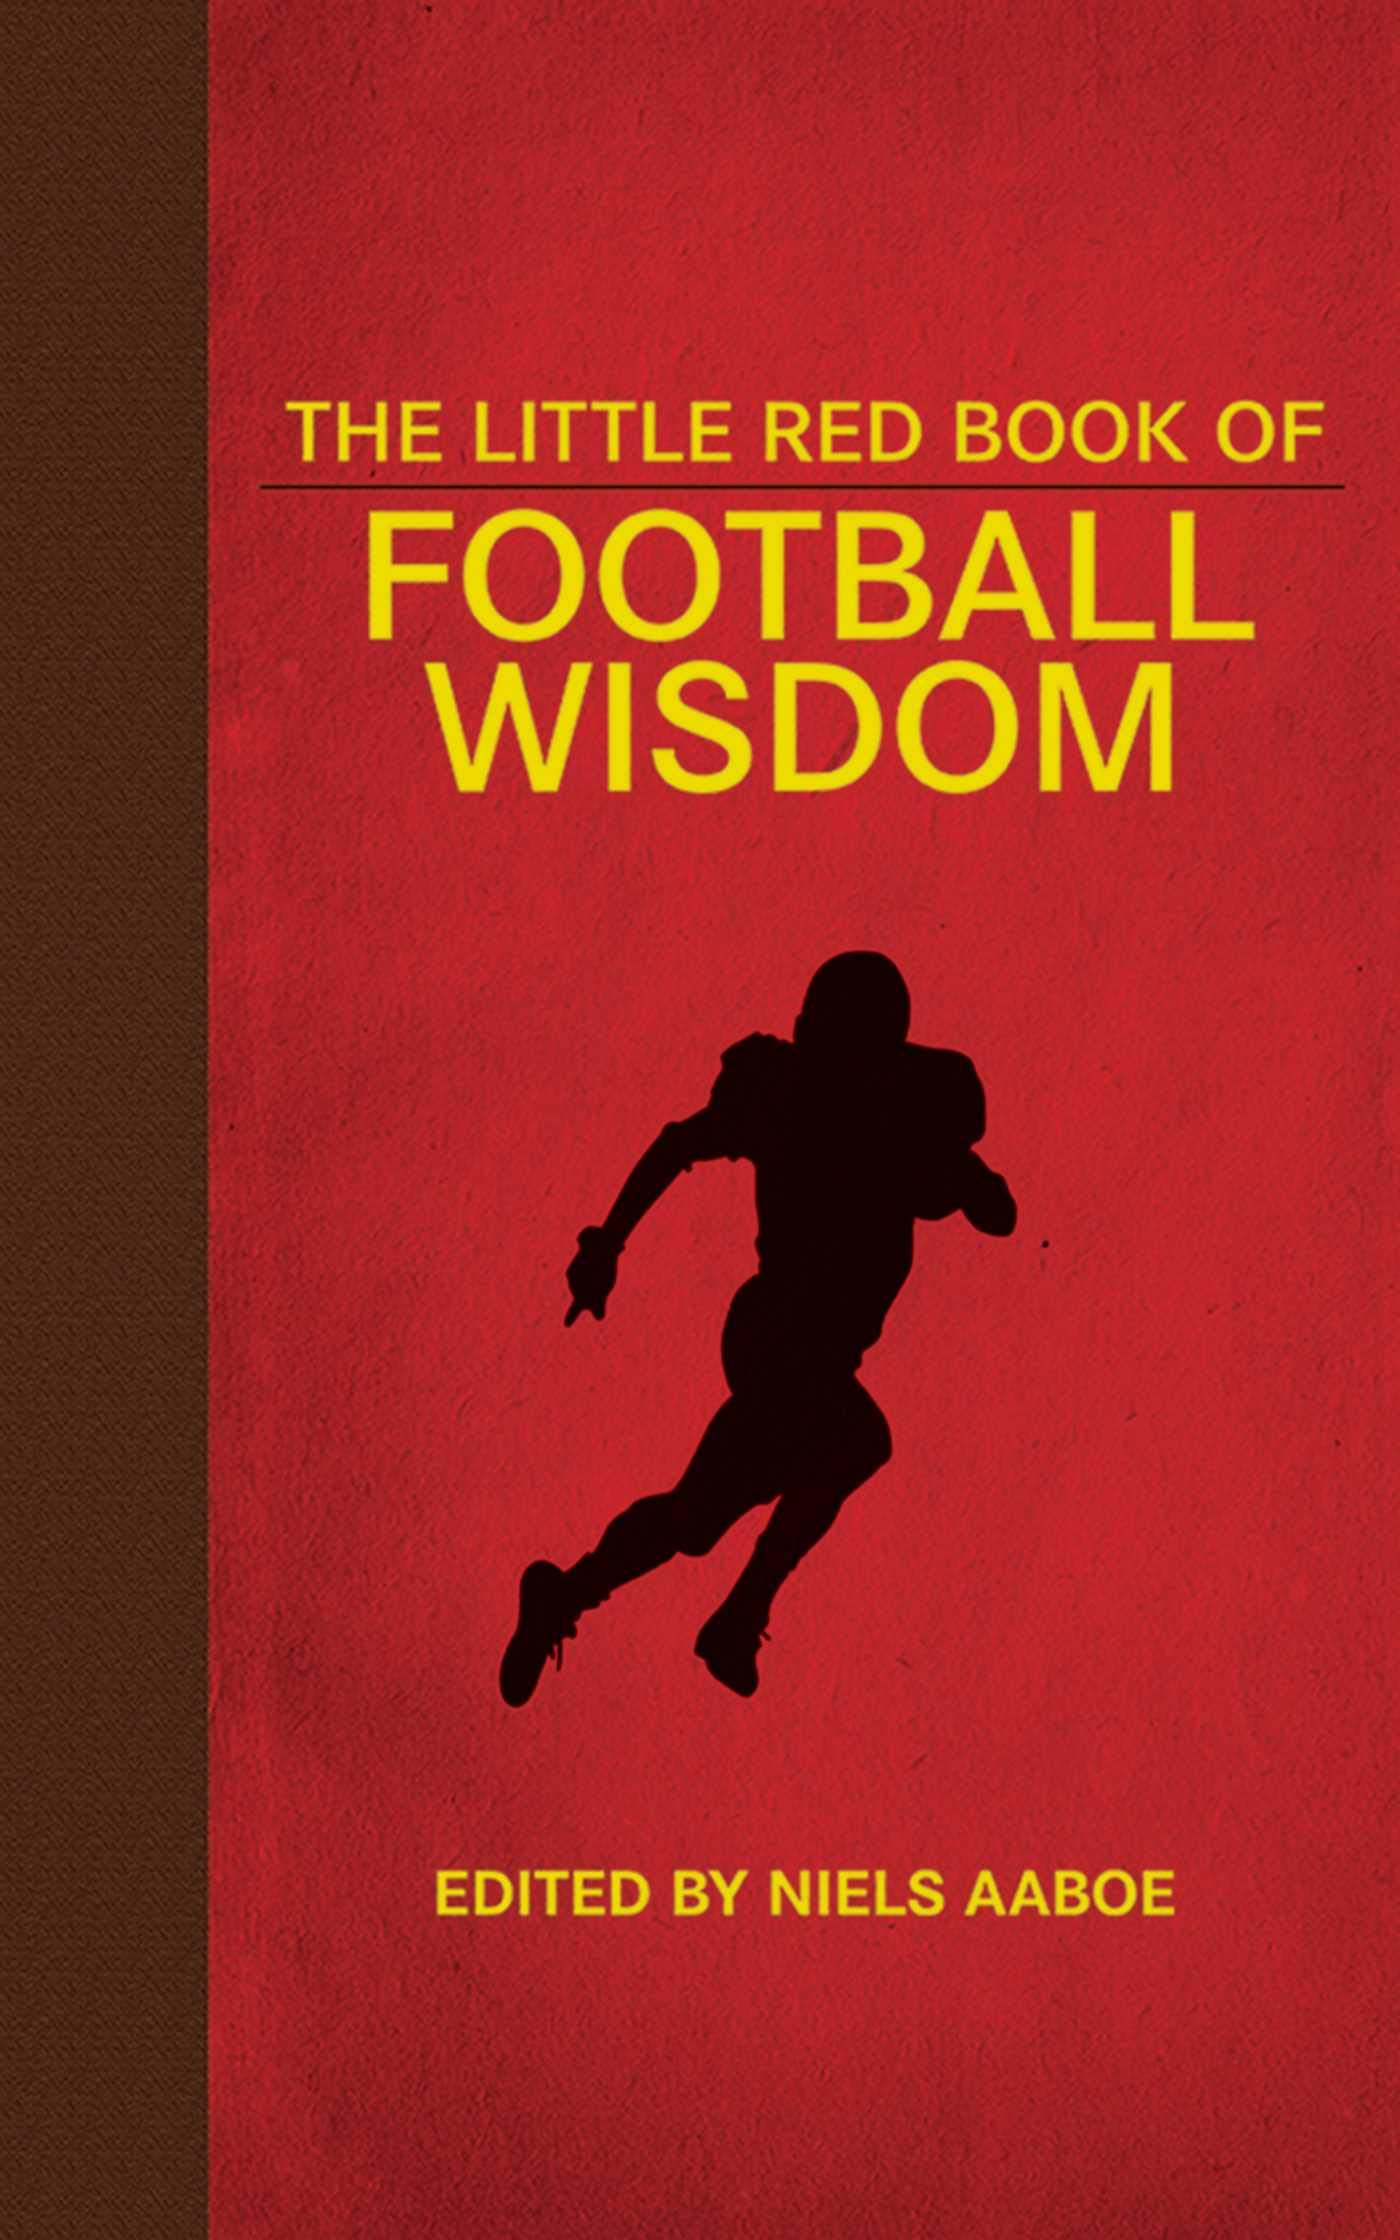 The Little Red Book of Football Wisdom (Little Red Books)